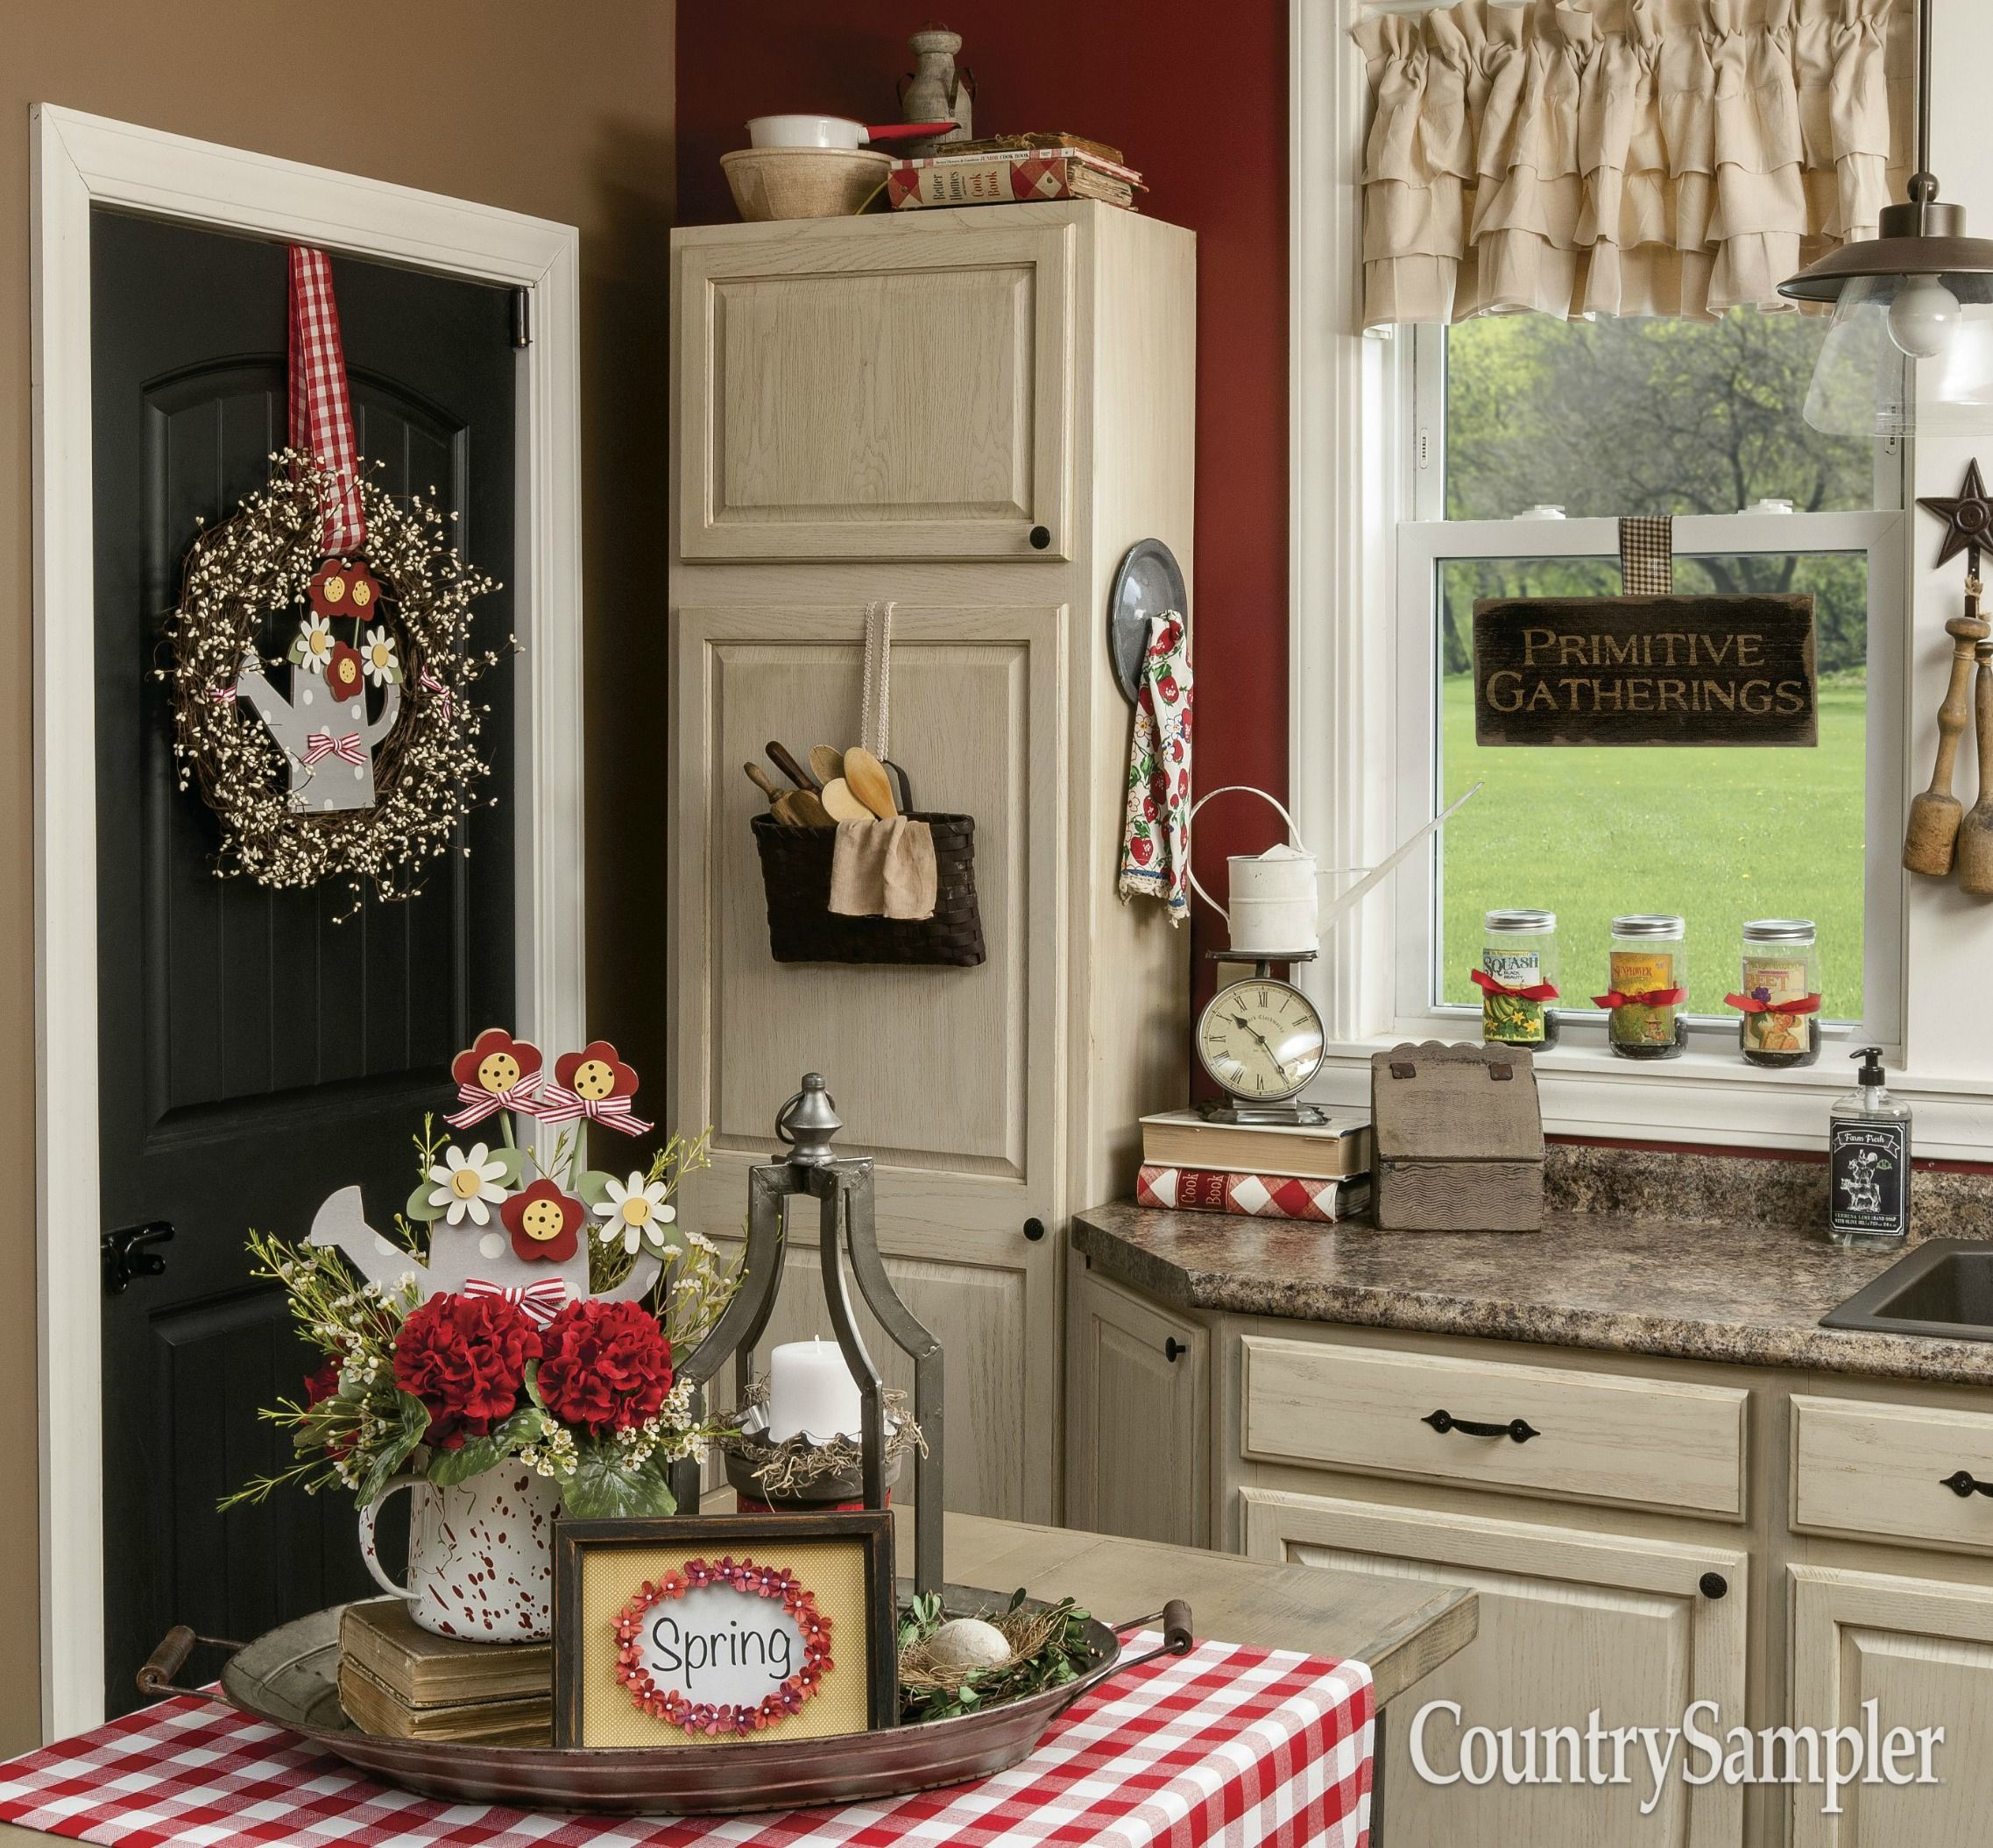 Country sampler stylists add blooming charm to a country